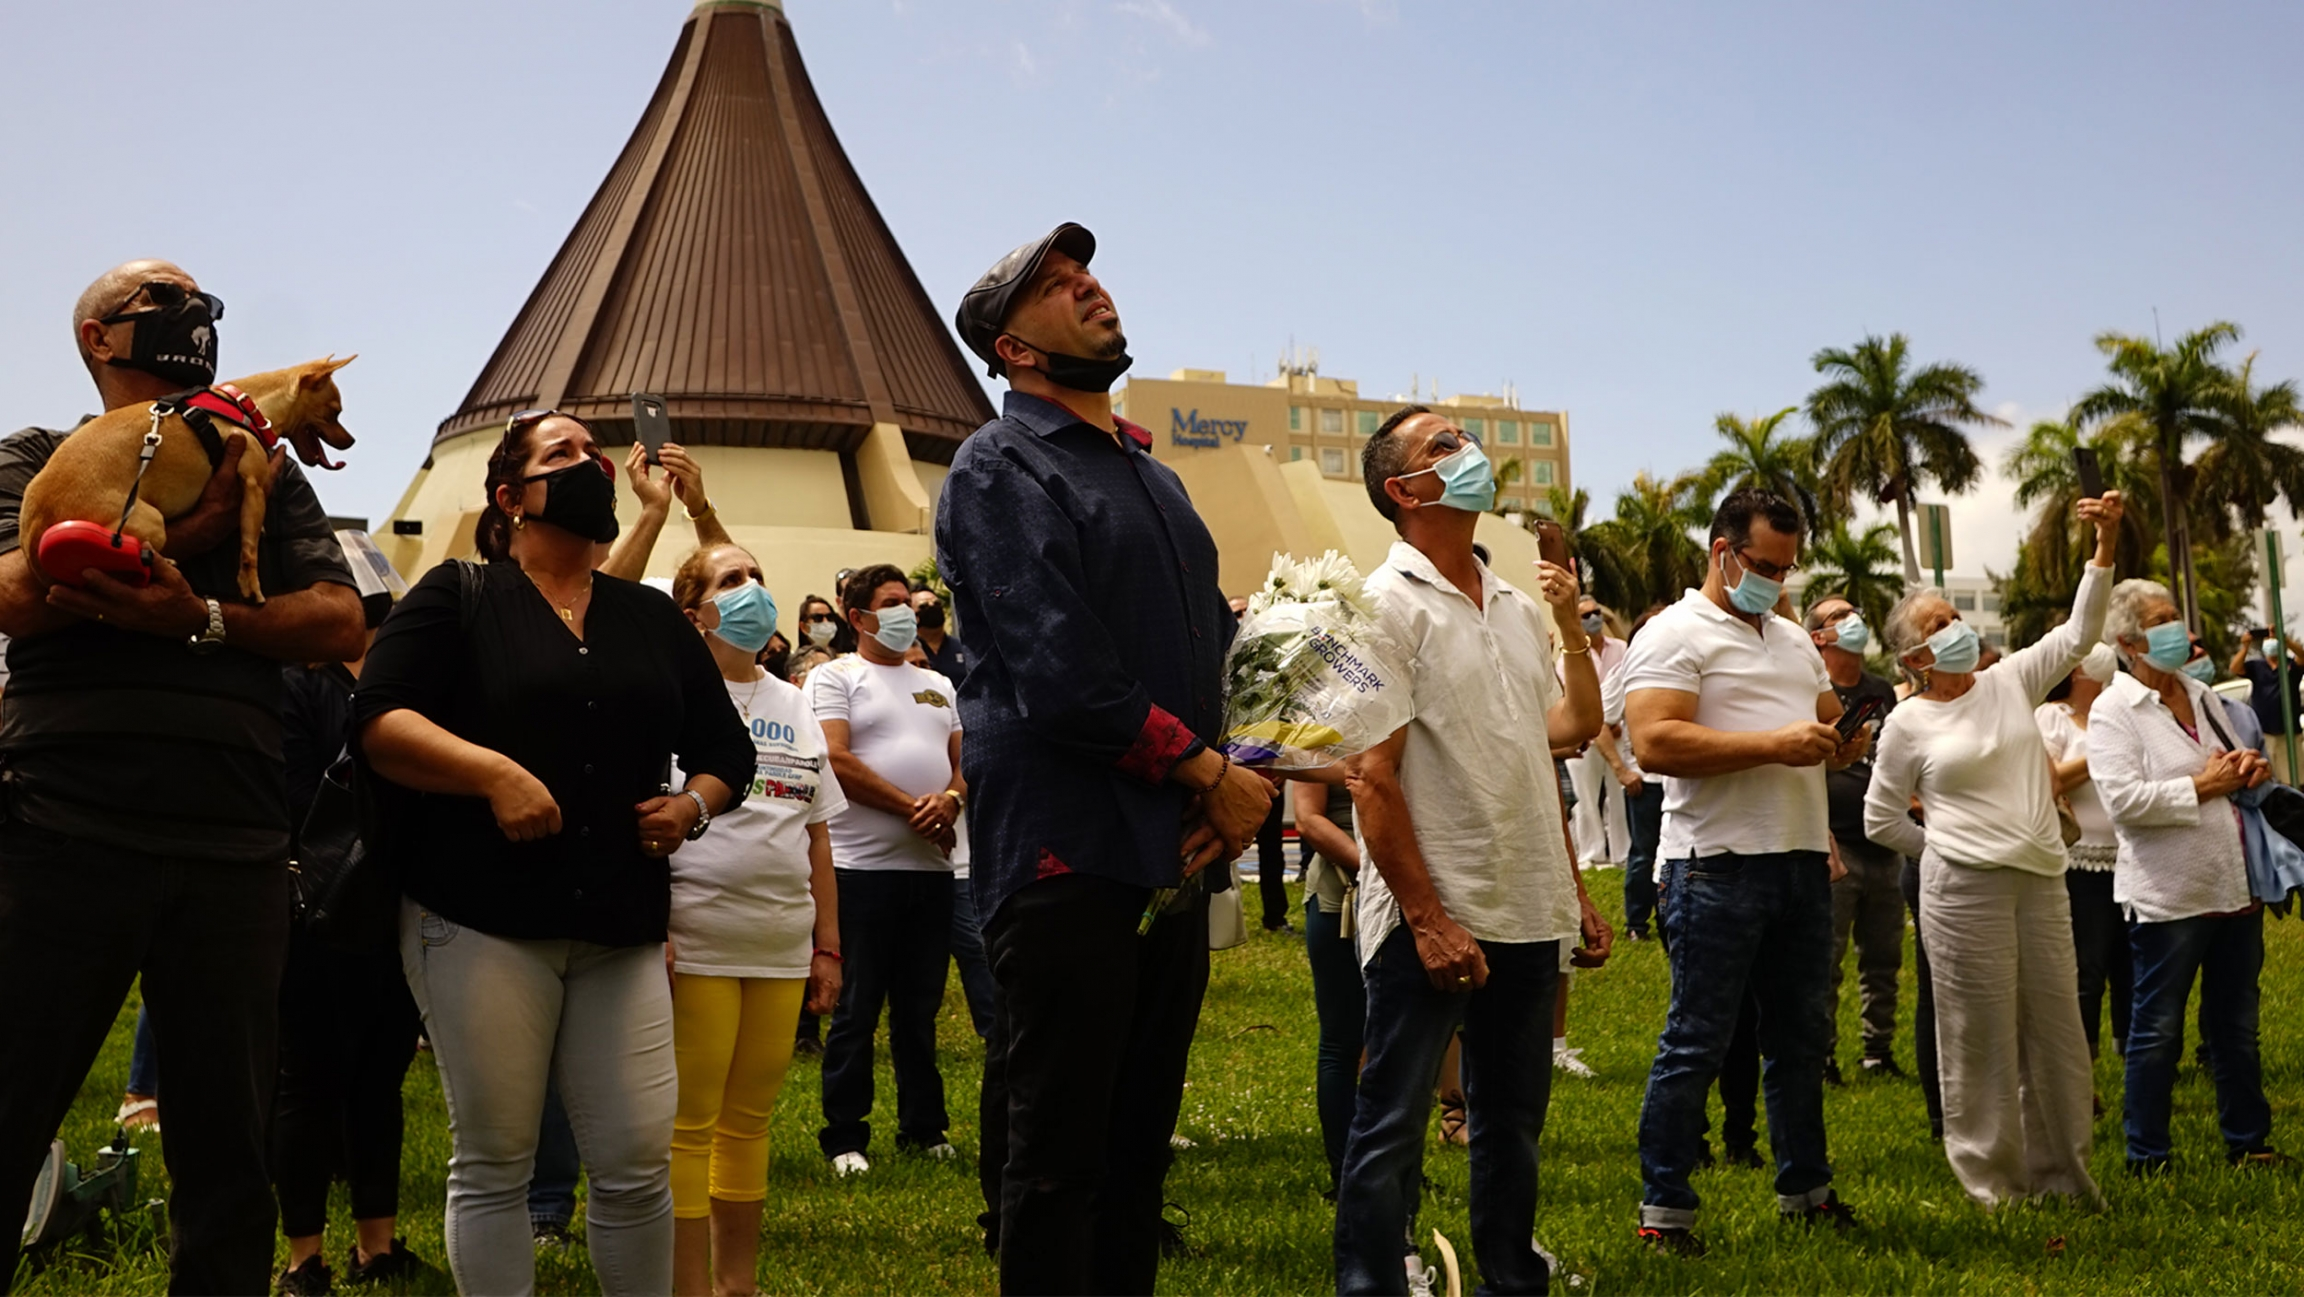 Group of people gather outside a church and look upward in prayers.